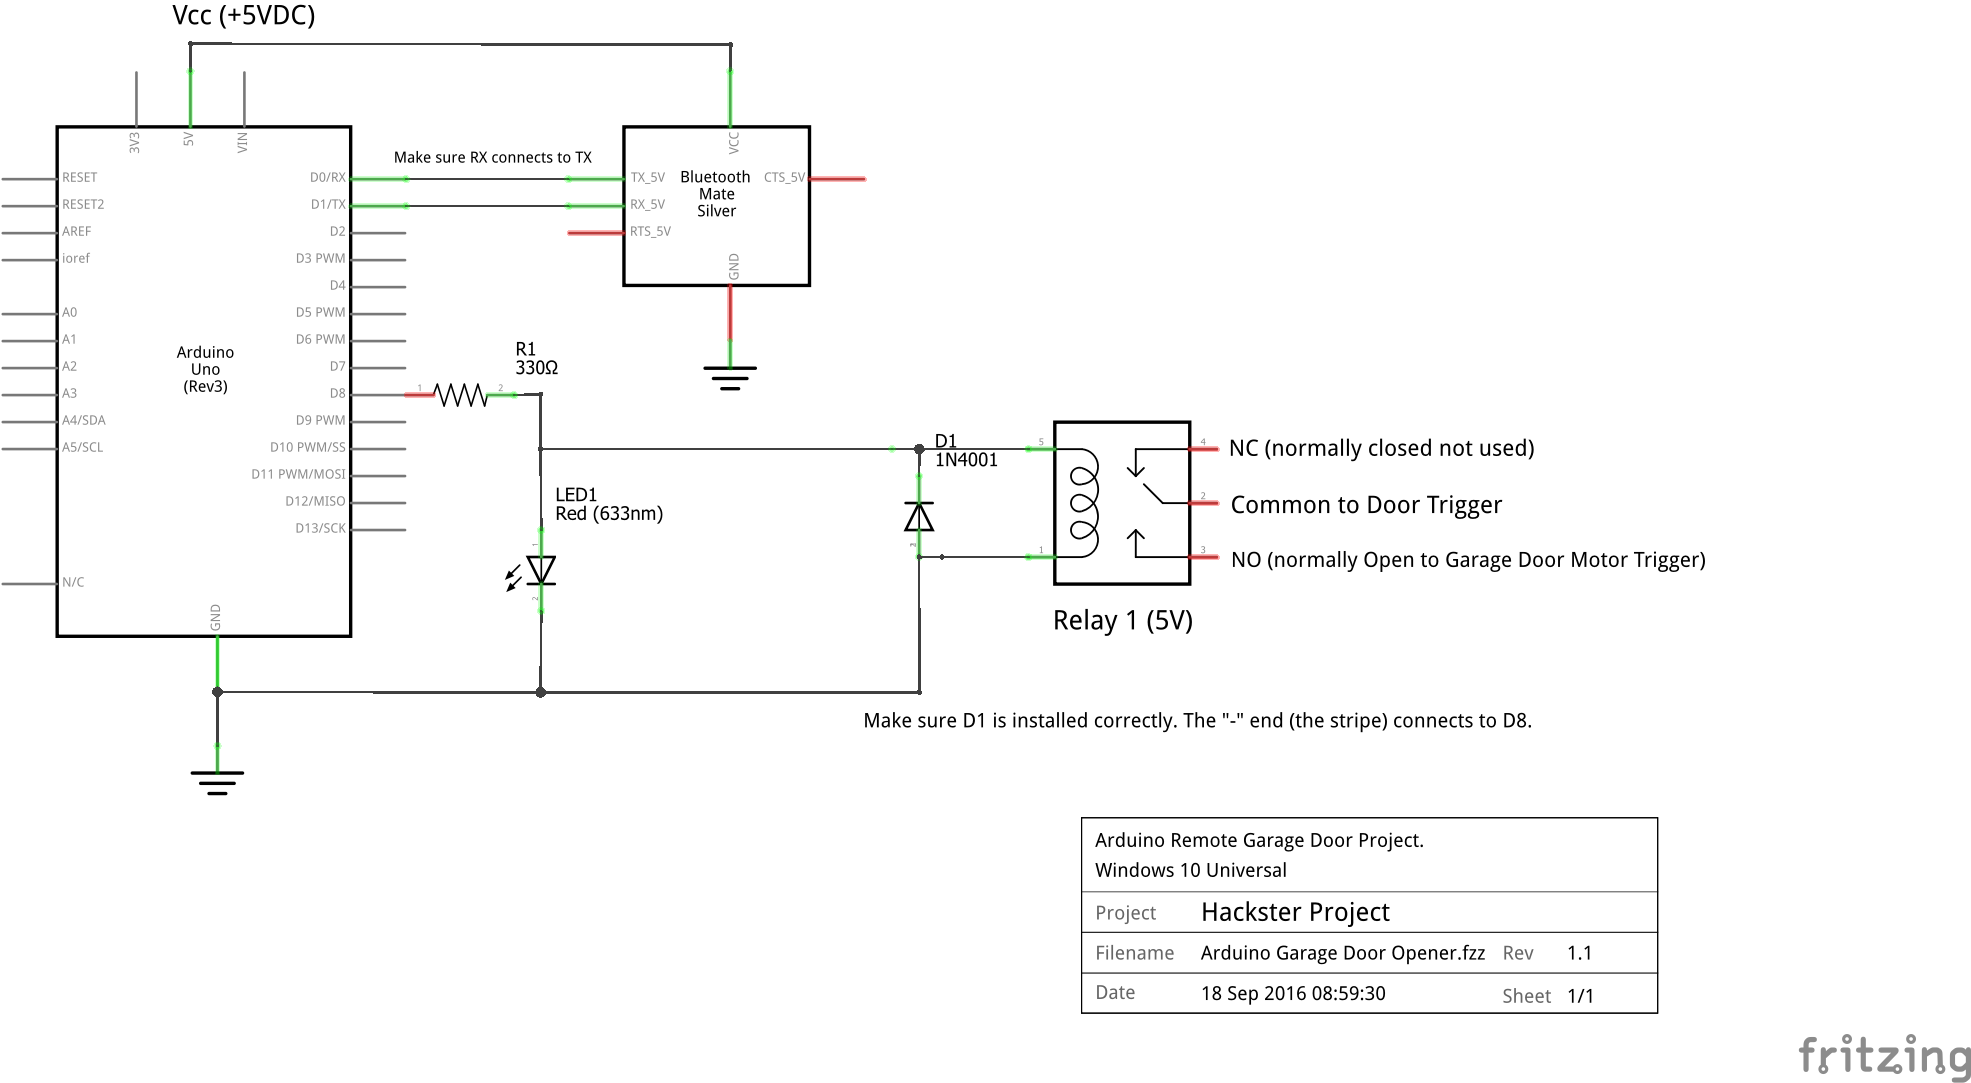 Unique Wiring Diagram Garage Door Diagram Diagramsample Diagramtemplate Wiri Diagram Diagramsample Diagramtem Garage Doors Doors Garage Door Sensor